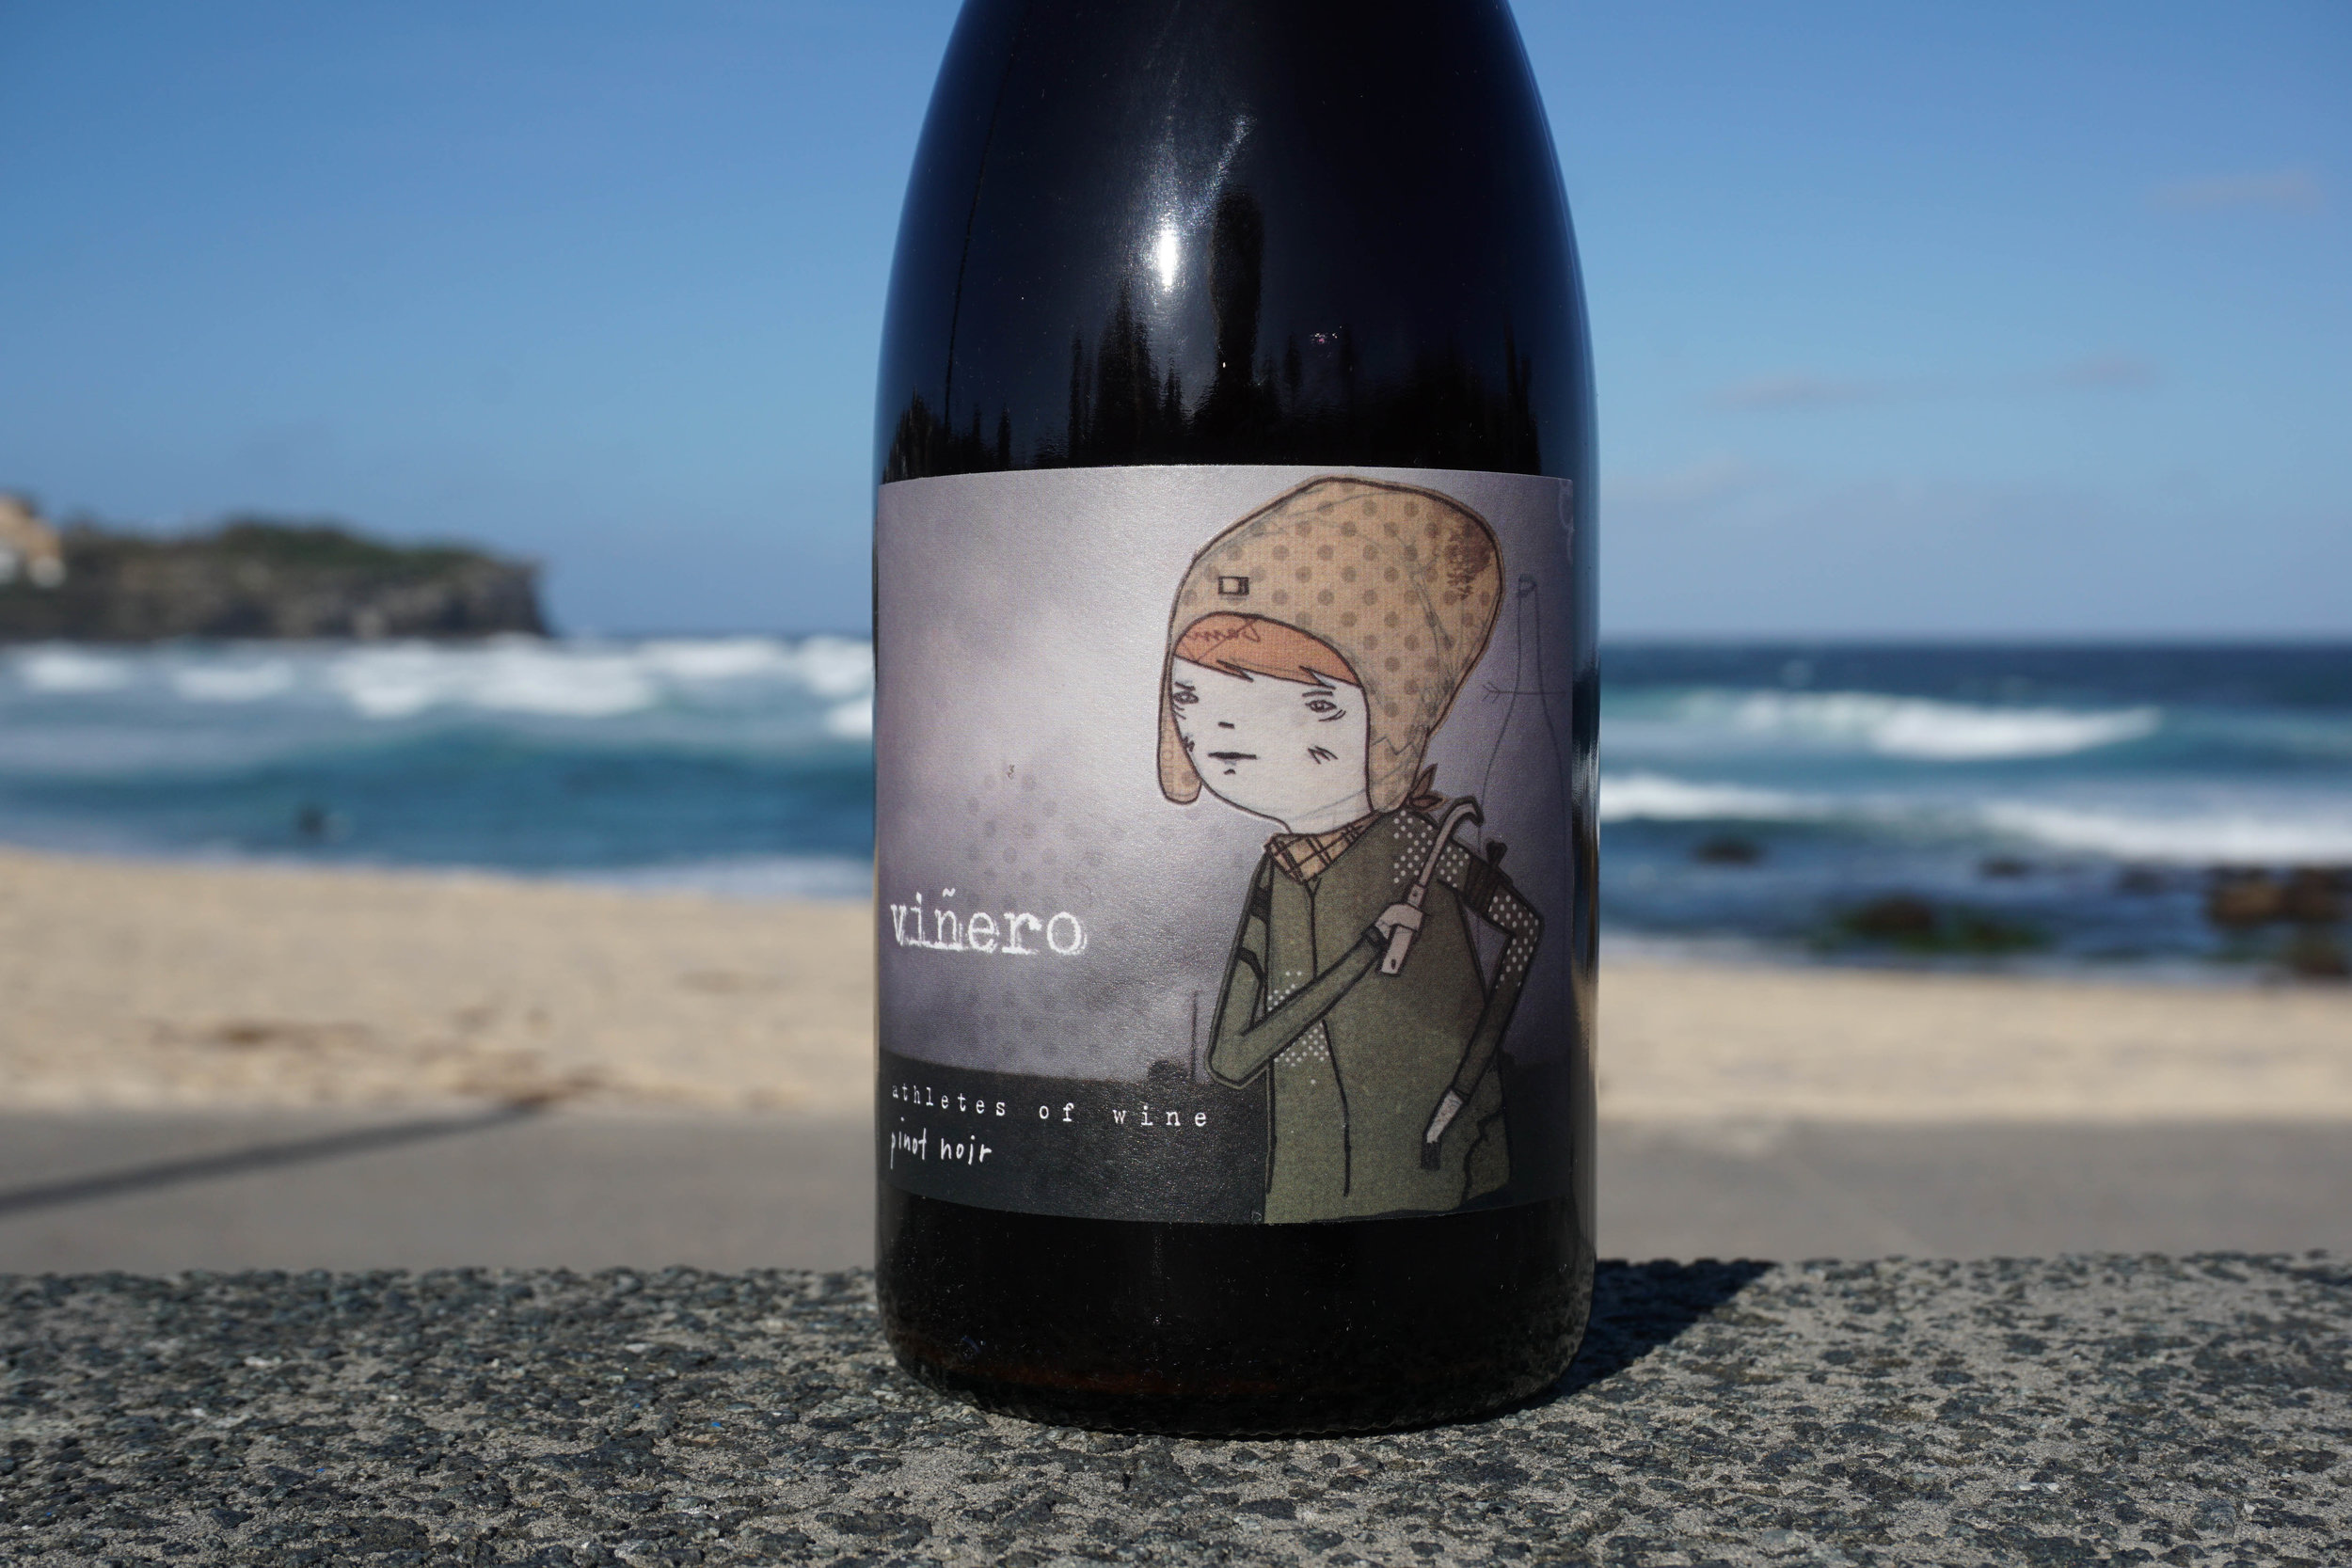 2015 Athletes Of Wine 'Viñero' Hesket Pinot Noir  Organic Practices  Vineyard: Hesket, Macedon Ranges Clone: MV6 Harvest: 2nd April; 1.7 ton/acre Elevation: 660m Soil: Grey and Red loam  100% destemmed; wild yeast fermented; aged on lees in hogsheads for 10 months (one new Saint Martin, plus older Sirugue and Remond); racked once, at bottling; bottled unfined and unfiltered. 50ppm SO2 added at bottling  Total production: 152 dozen